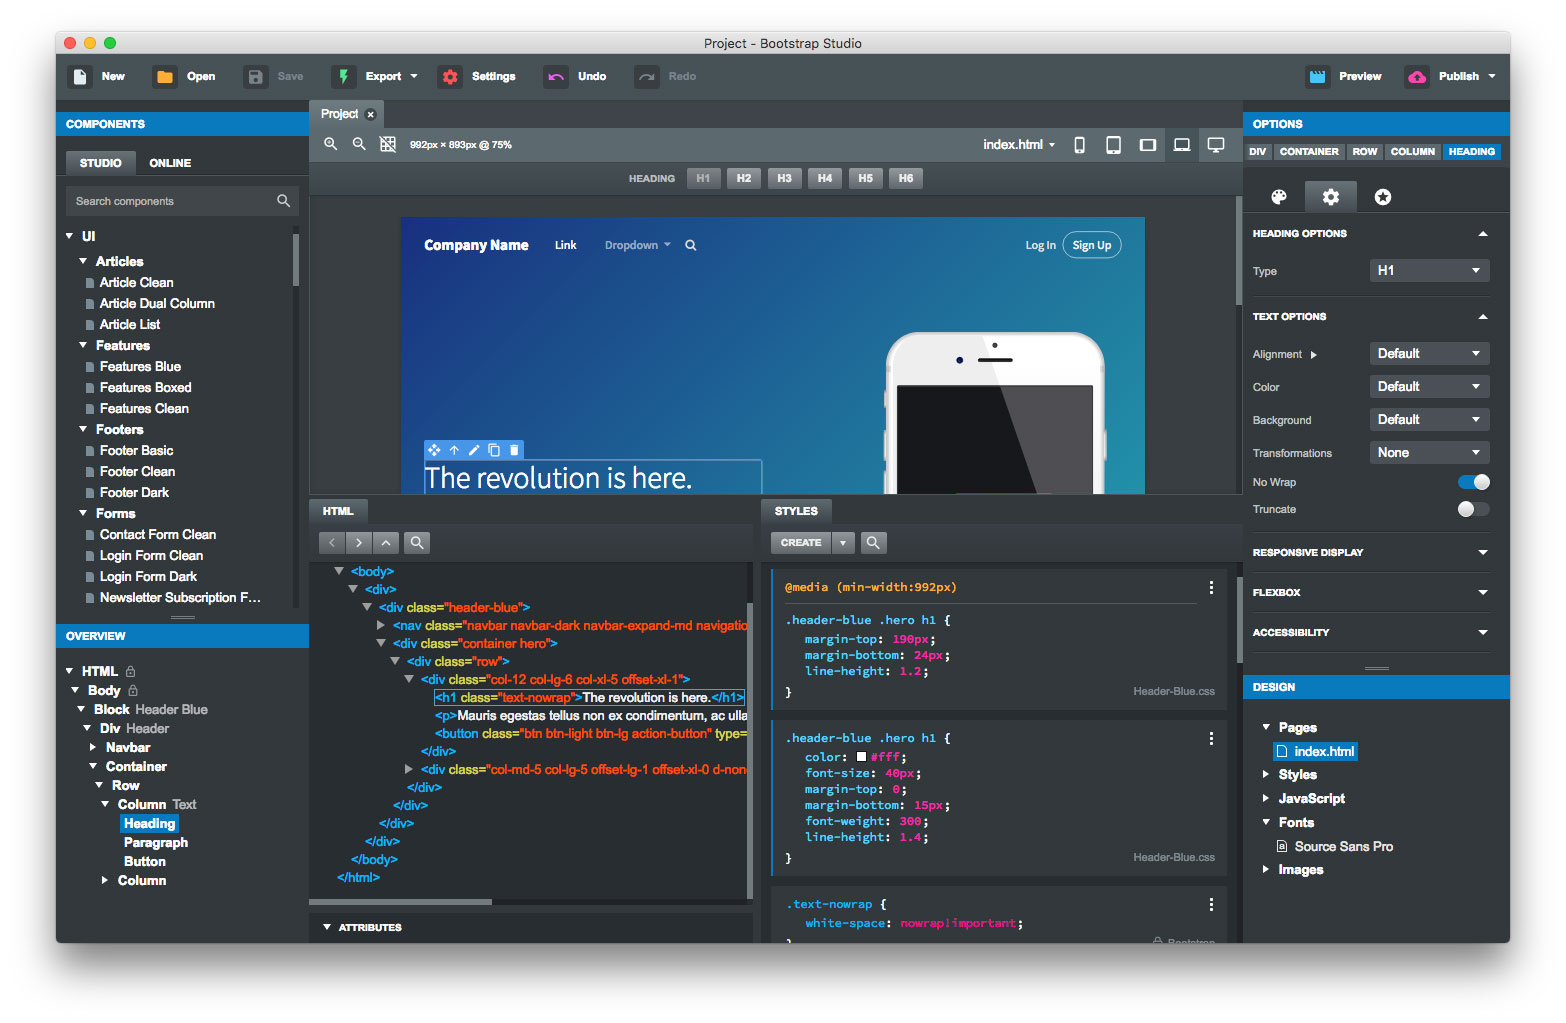 Bootstrap Studio Has A Beautiful And Powerful Interface, Which Is Built  Around The Simplicity Of Drag And Drop. This Makes It The Perfect Tool For  ...